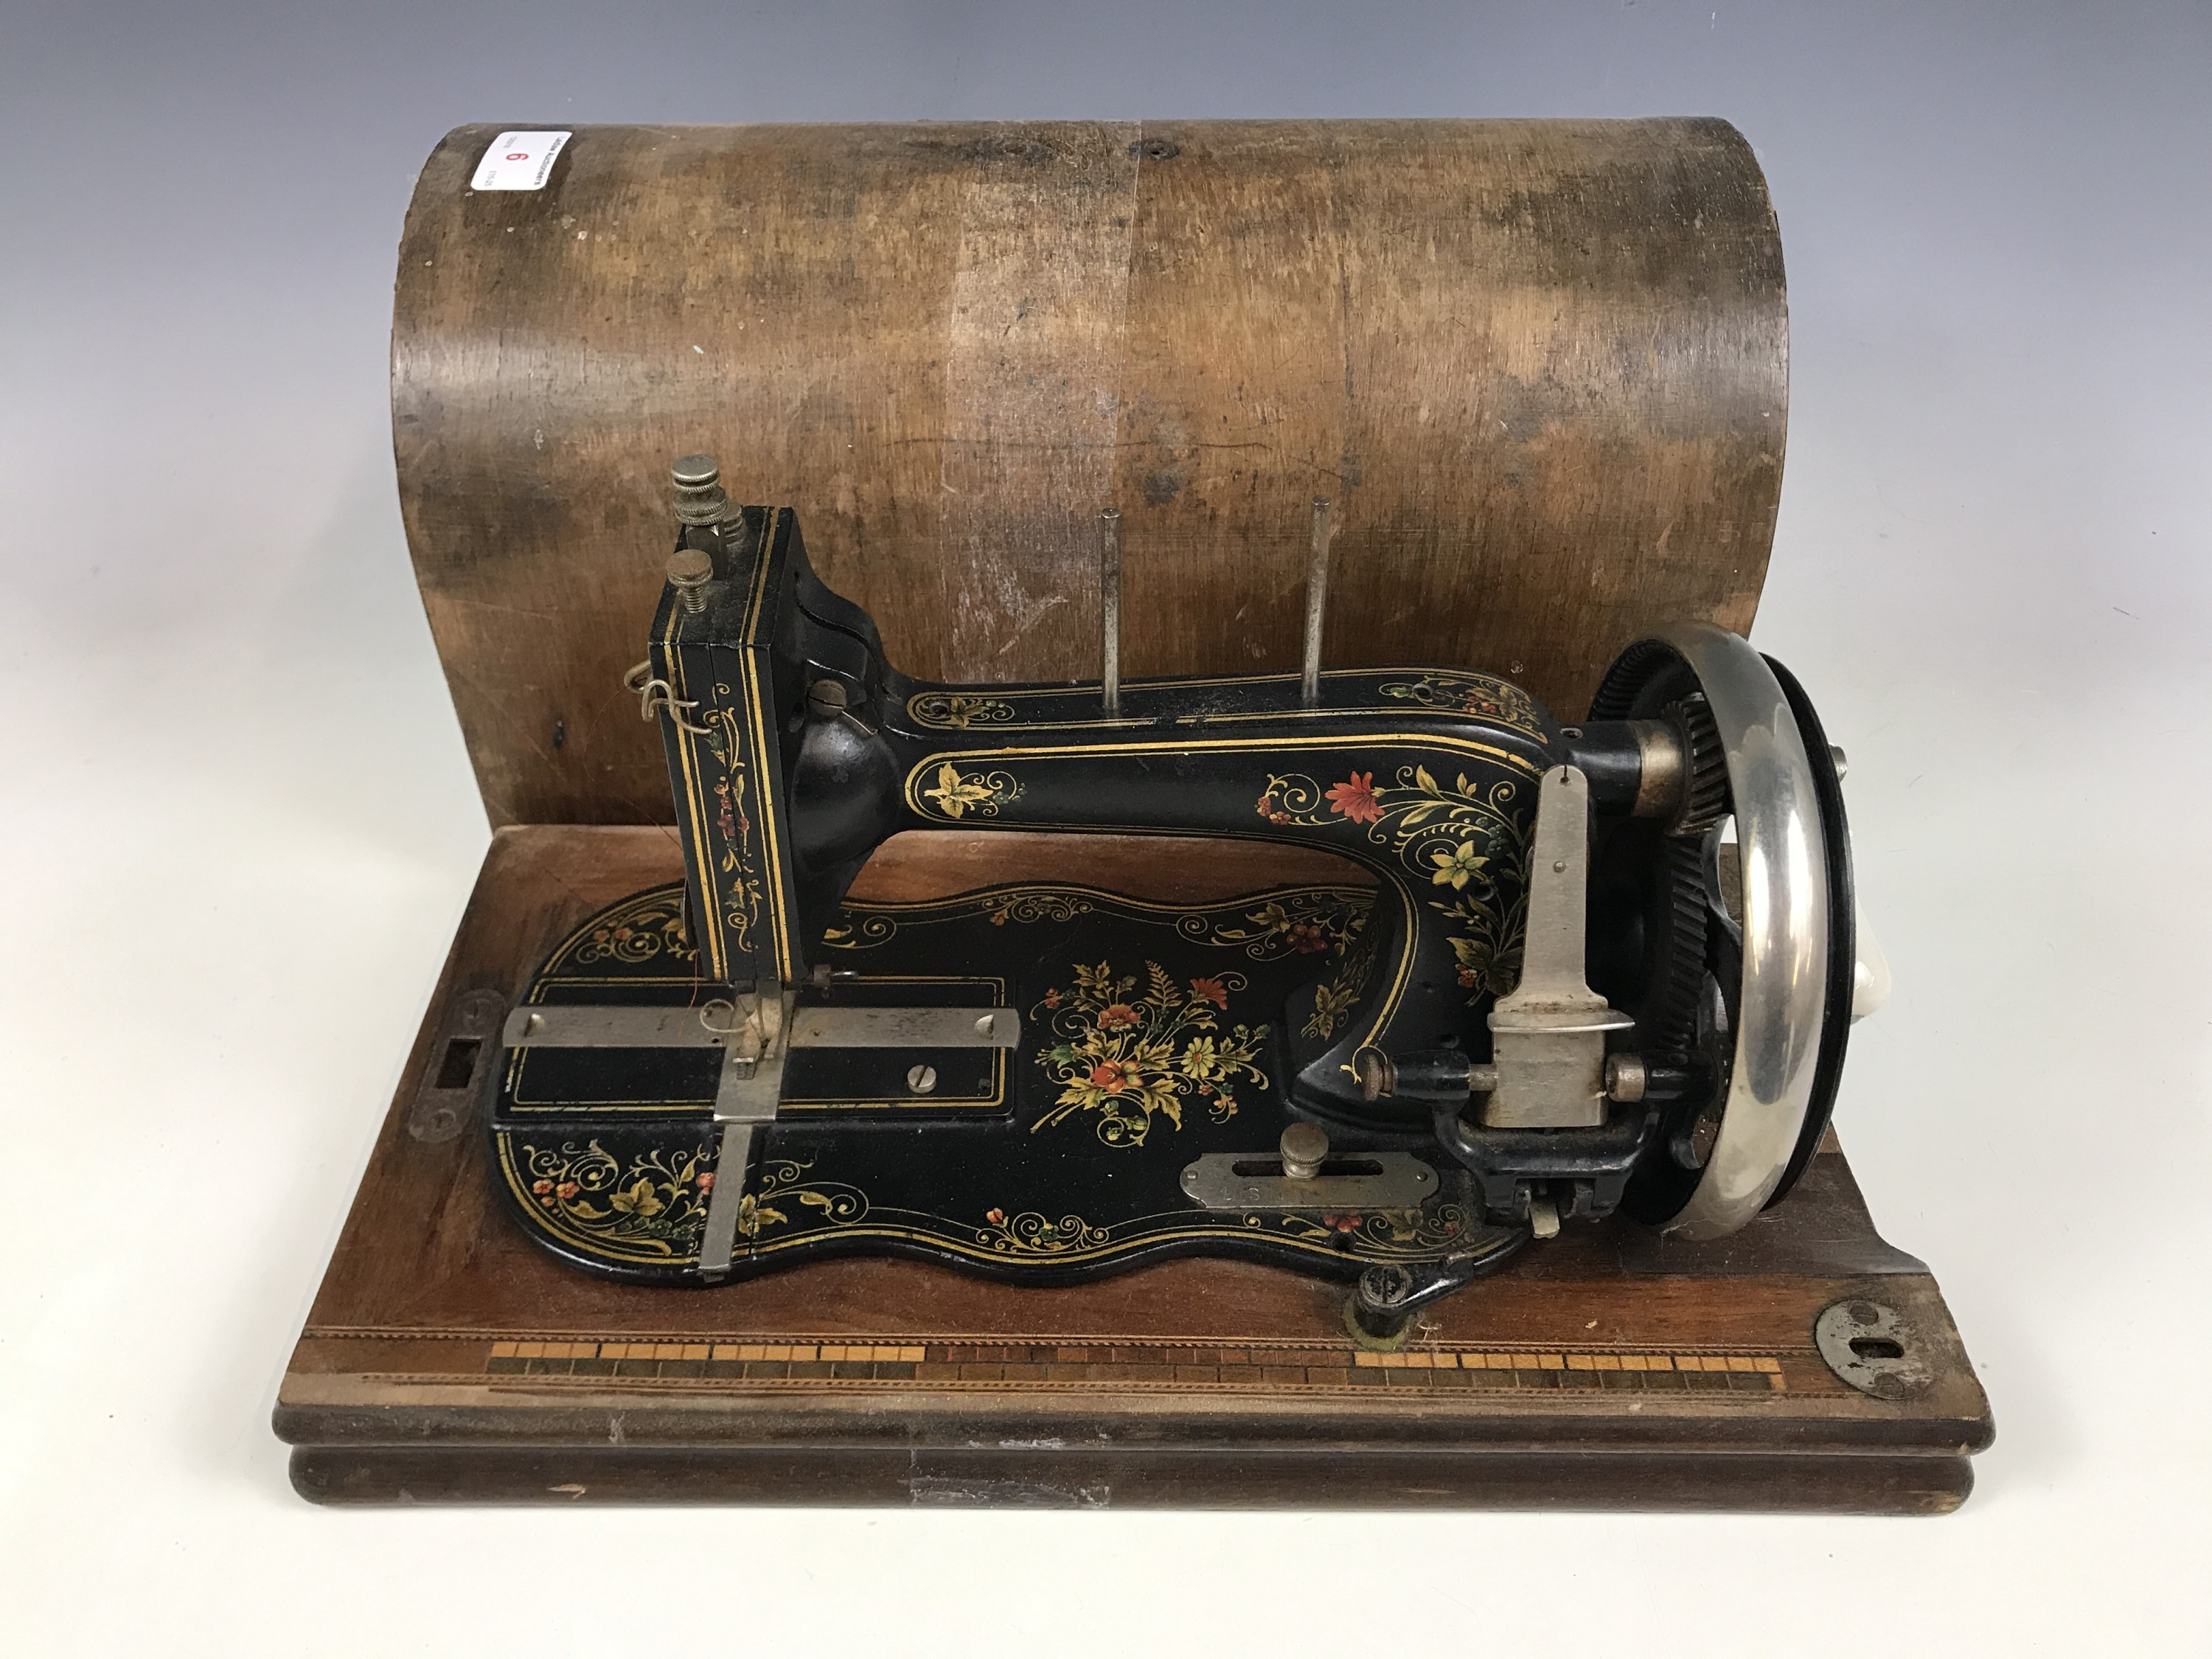 Lot 6 - A vintage sewing machine